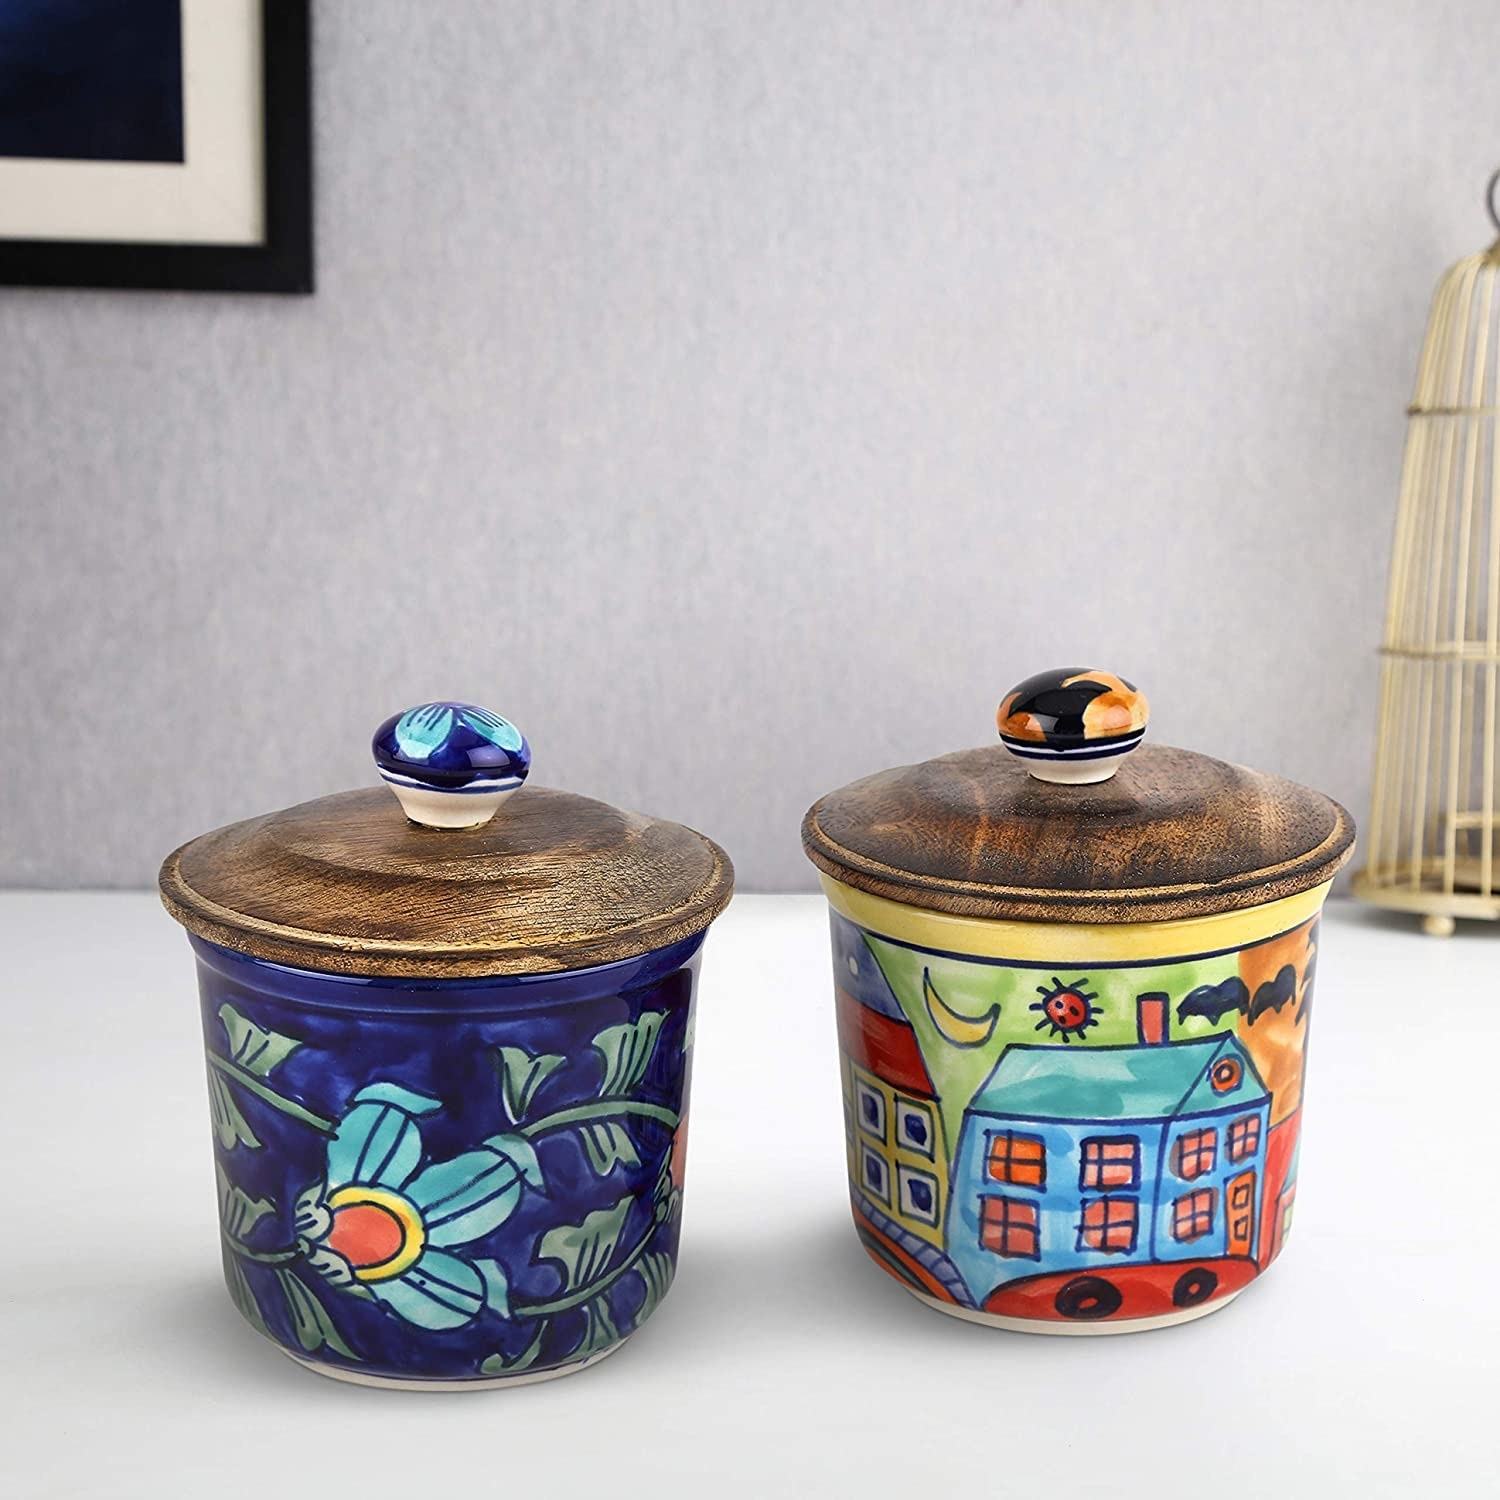 Set of 2 colourful ceramic jars with wooden lids and hand painted flowers and houses.